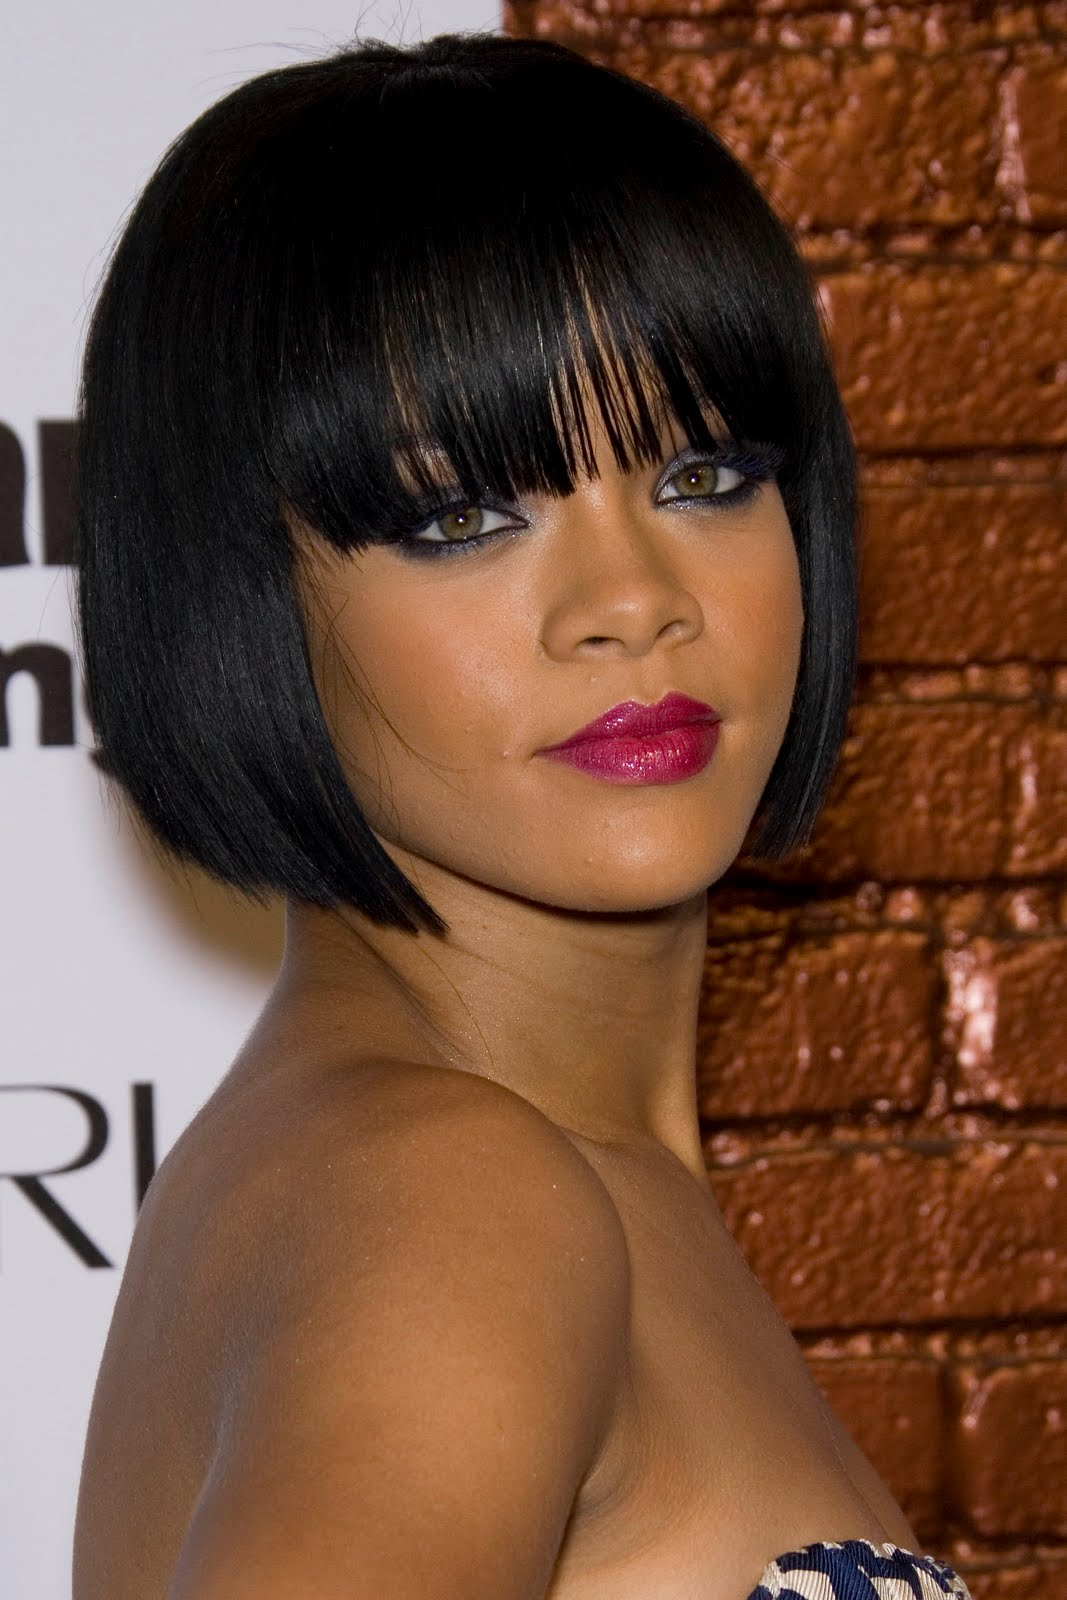 hairstyles for women 30 short hairstyles for black women you will love  title=